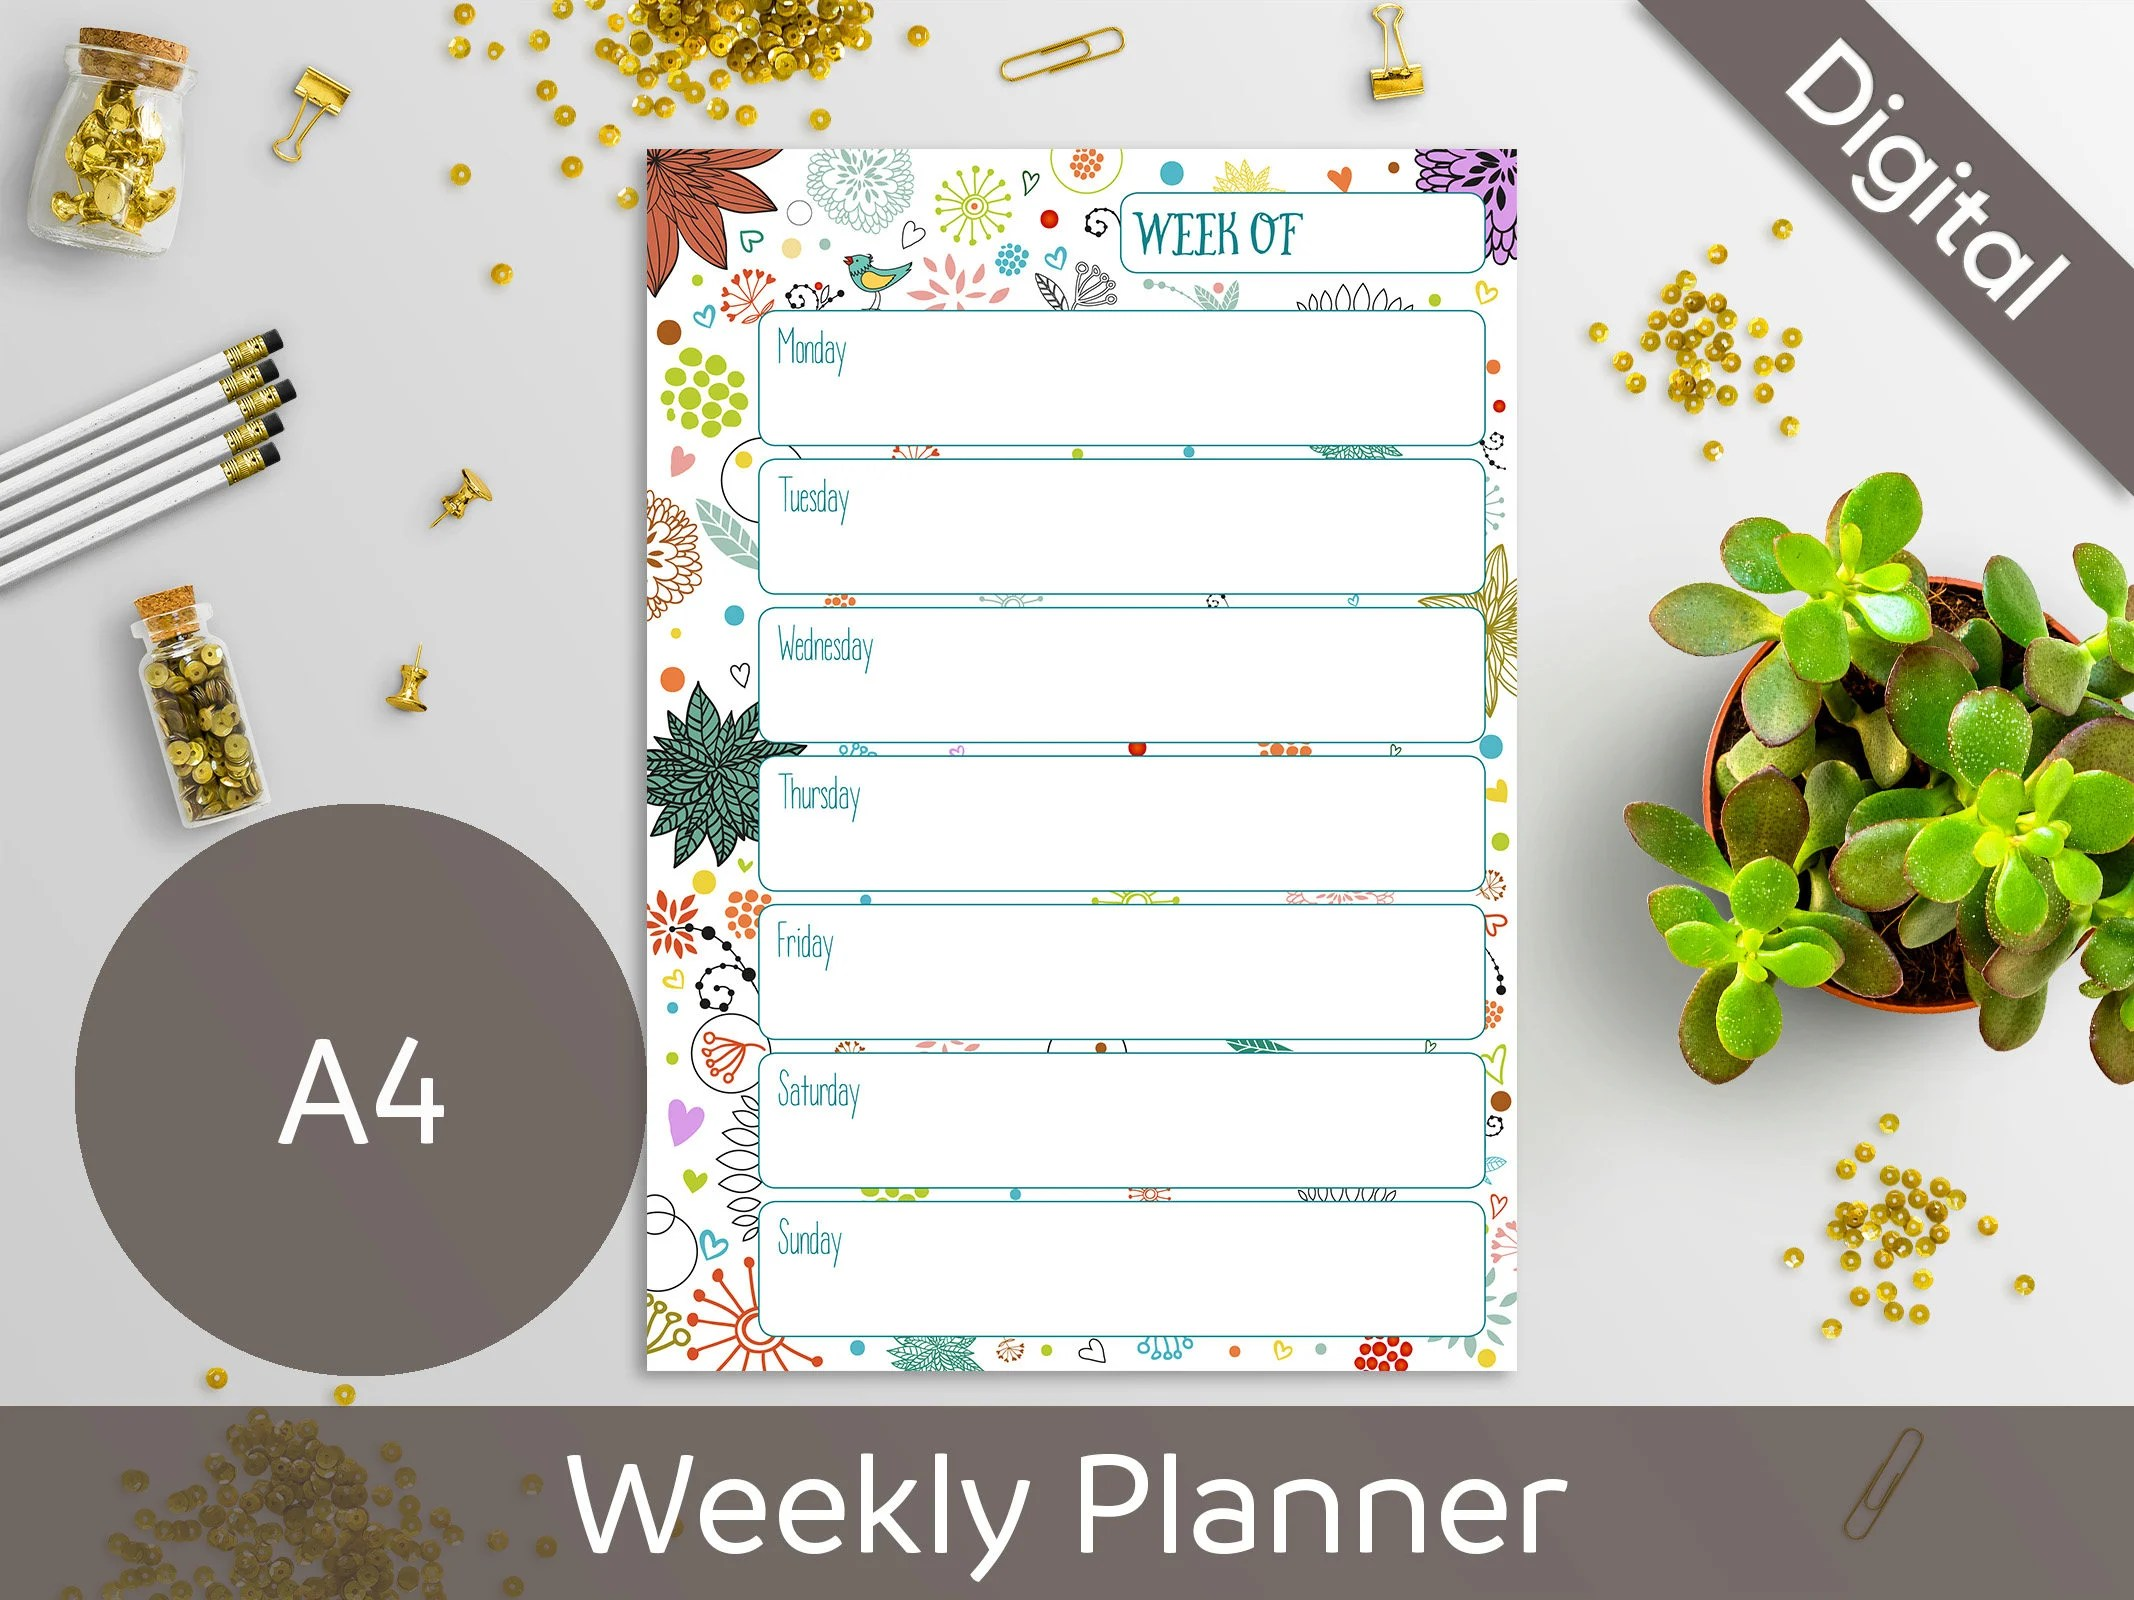 30 OFF coupon on A4 Weekly Planner Printable, Undated Weekly, 2